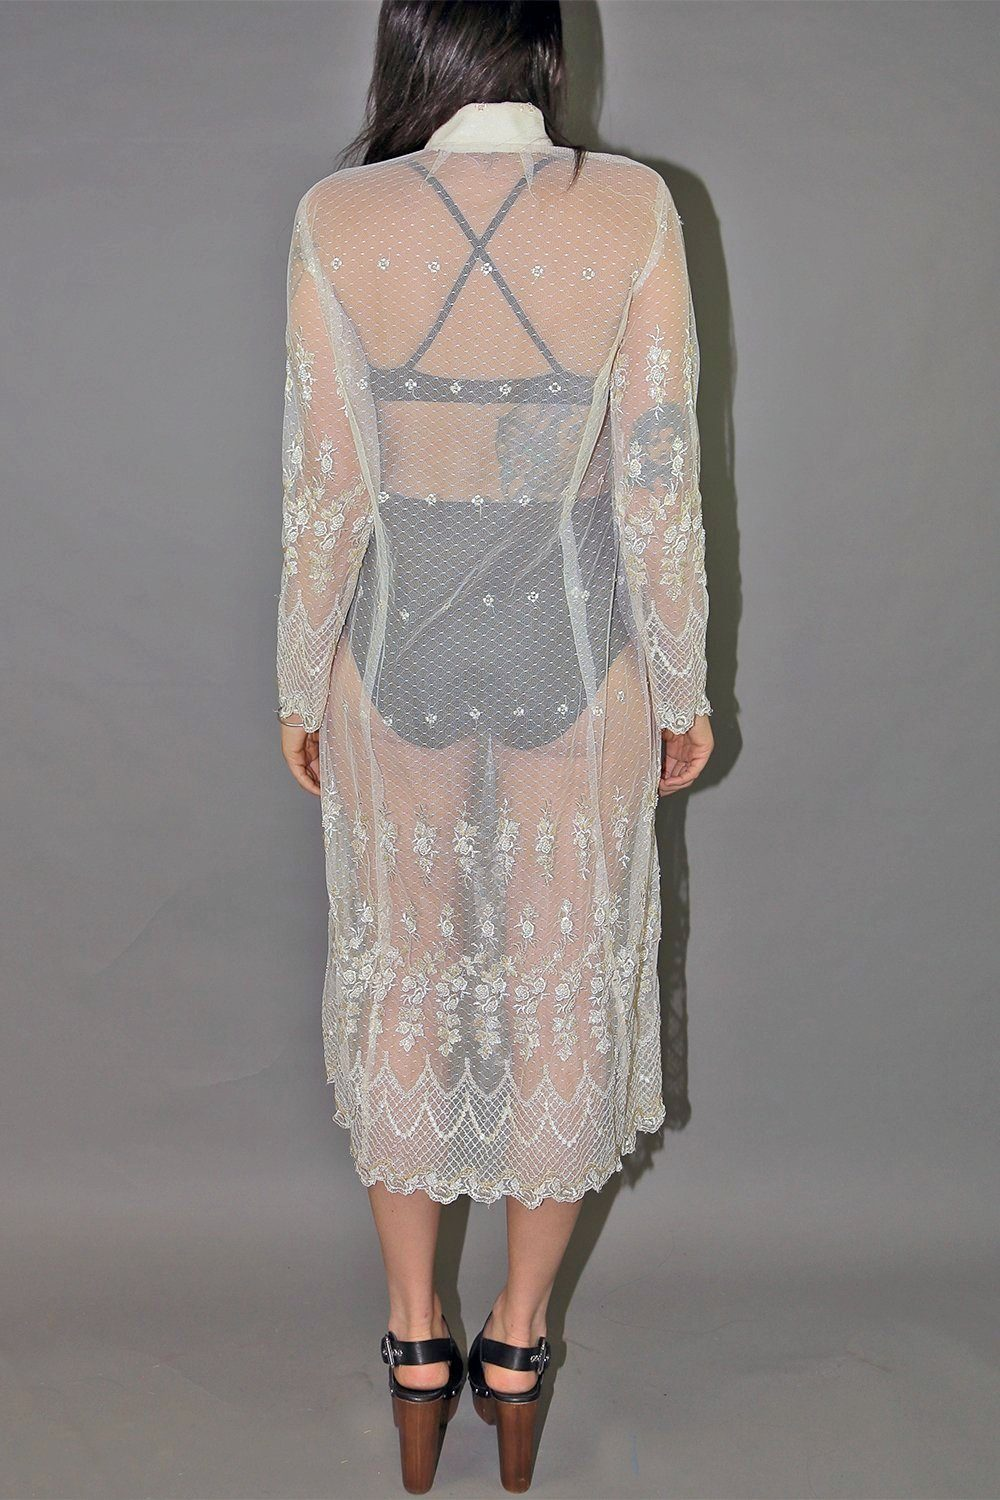 Spiderwebs and Roses Sheer Hand Beaded and Embroidered Dress